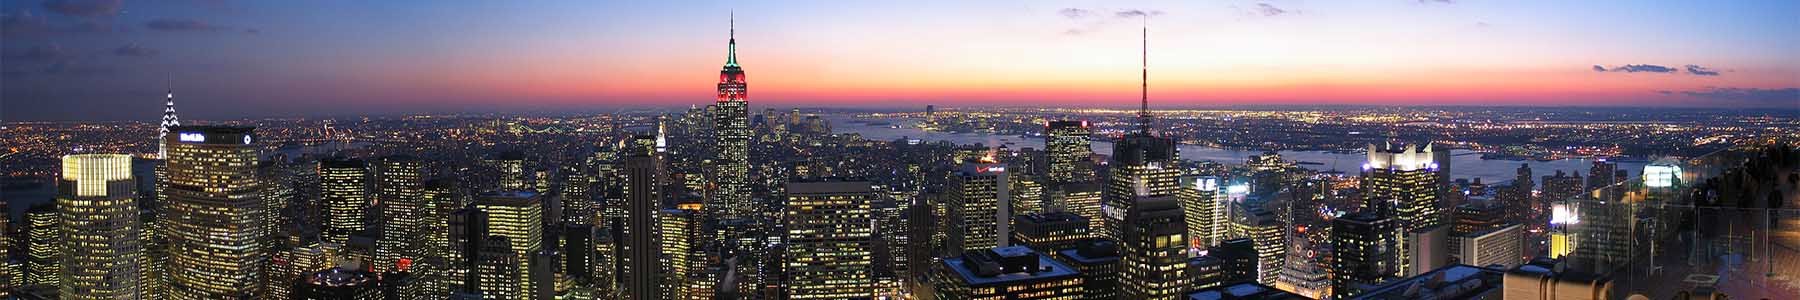 NYC Top of the Rock Pano banner.jpg